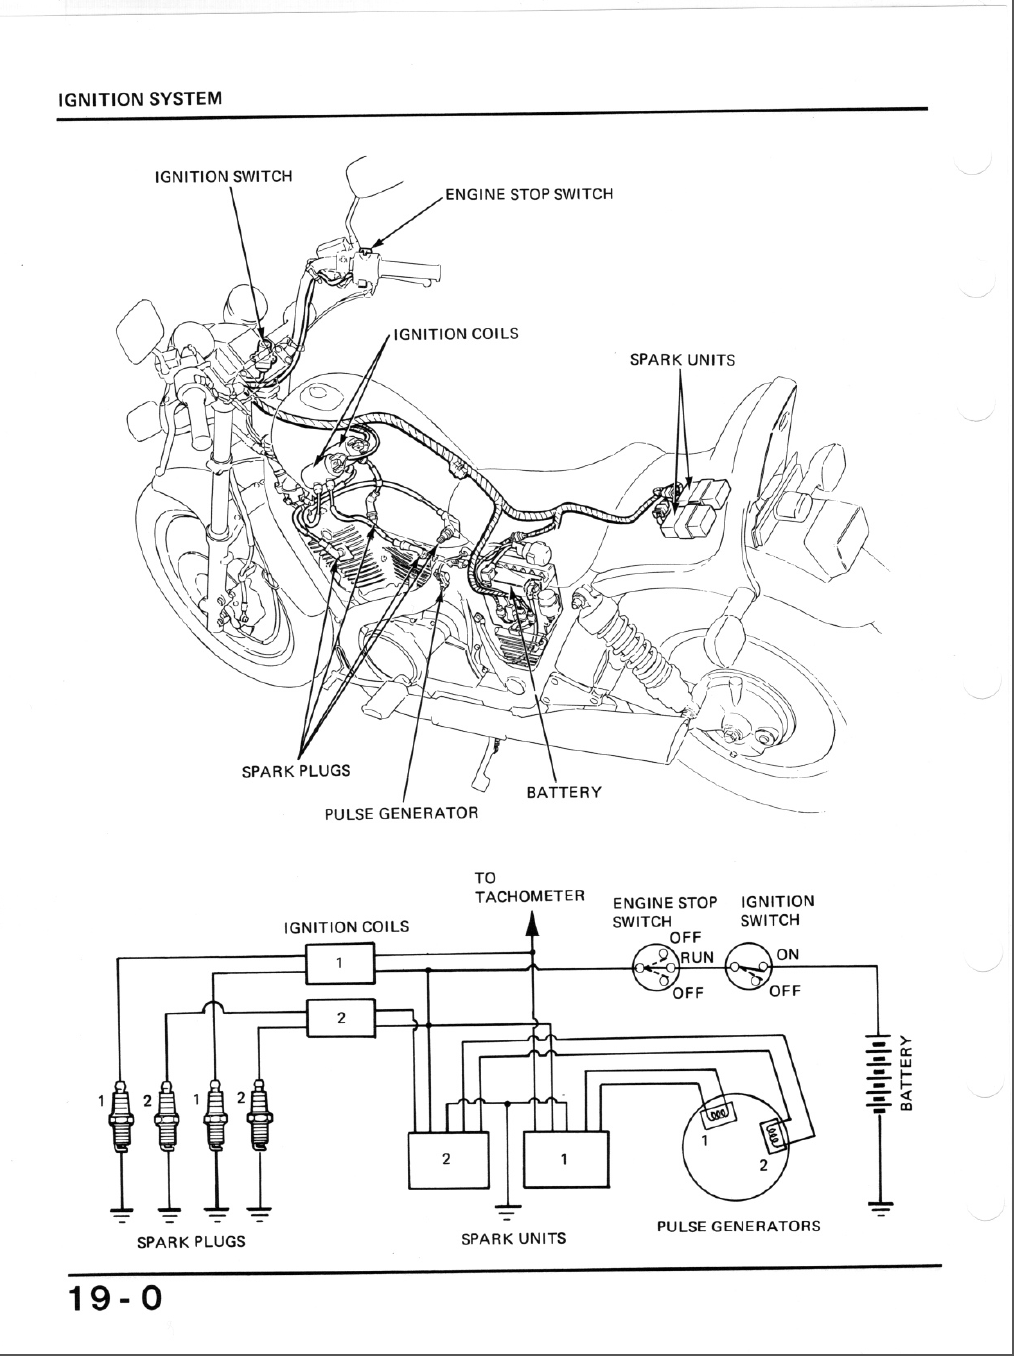 Honda Shadow Vt500 Motorcycle Wiring Diagram 44 1984 Kawasaki 1100 Schematics 9267d1409799693 700 Ignition System Chinese Atv Diagrams At